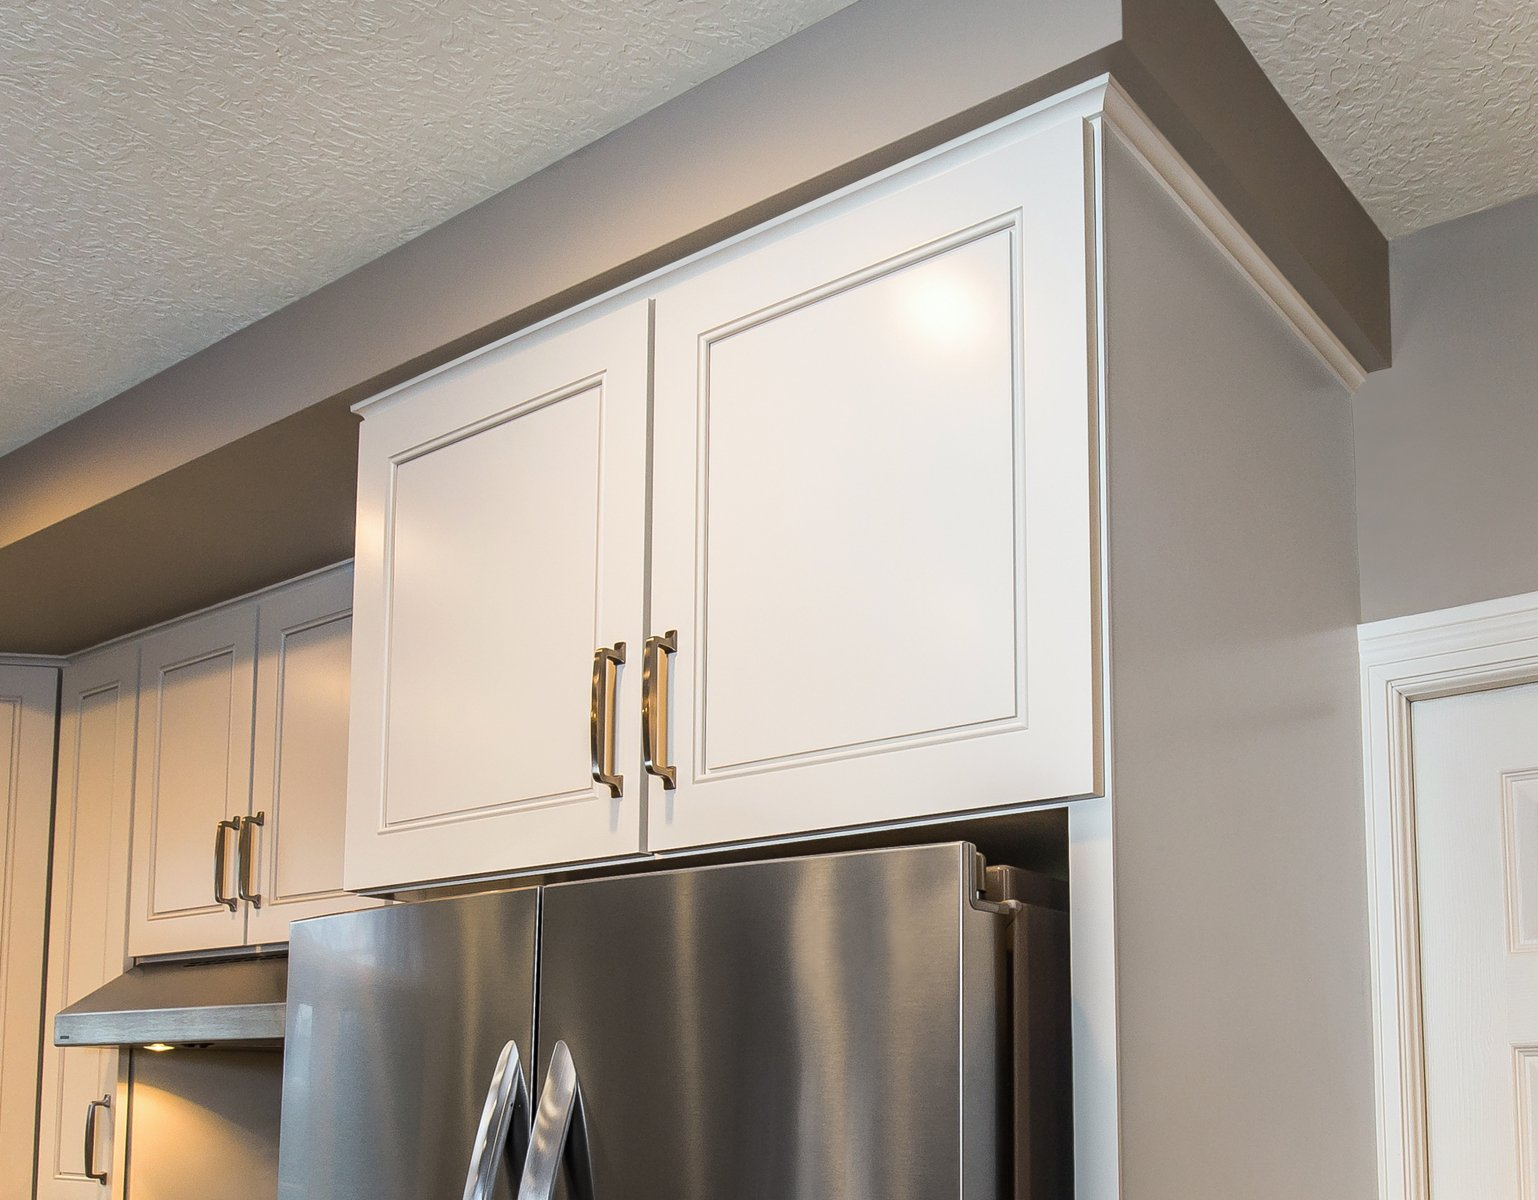 White refaced kitchen cabinets above a silver refrigerator